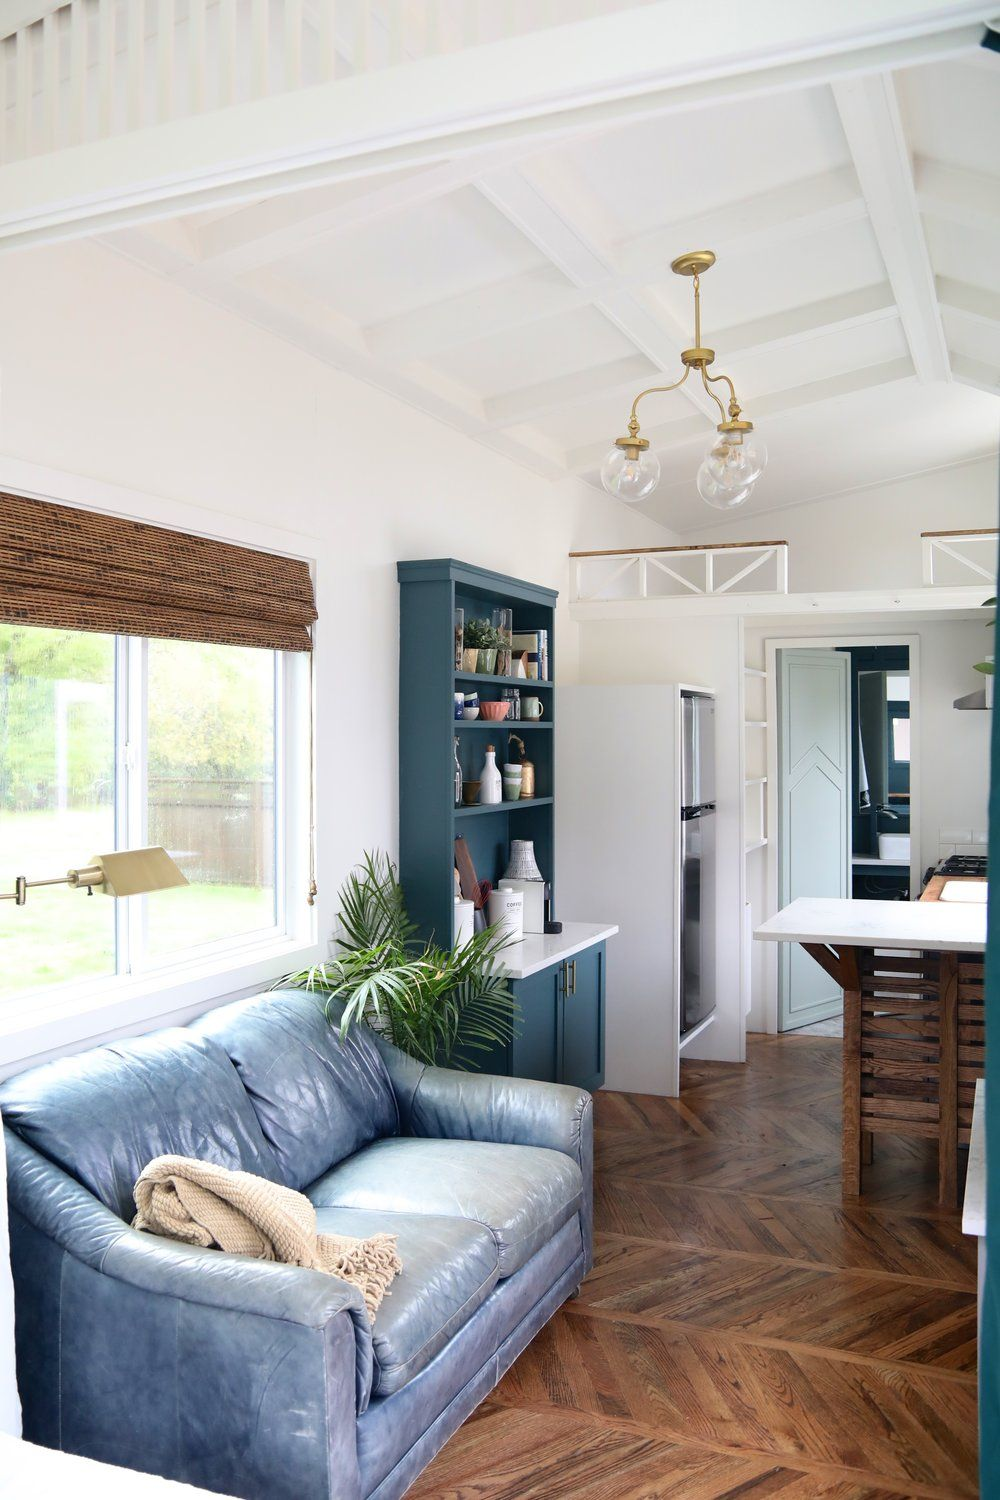 The Pacific Harmony: a stylish, luxe tiny home from Handcrafted ...